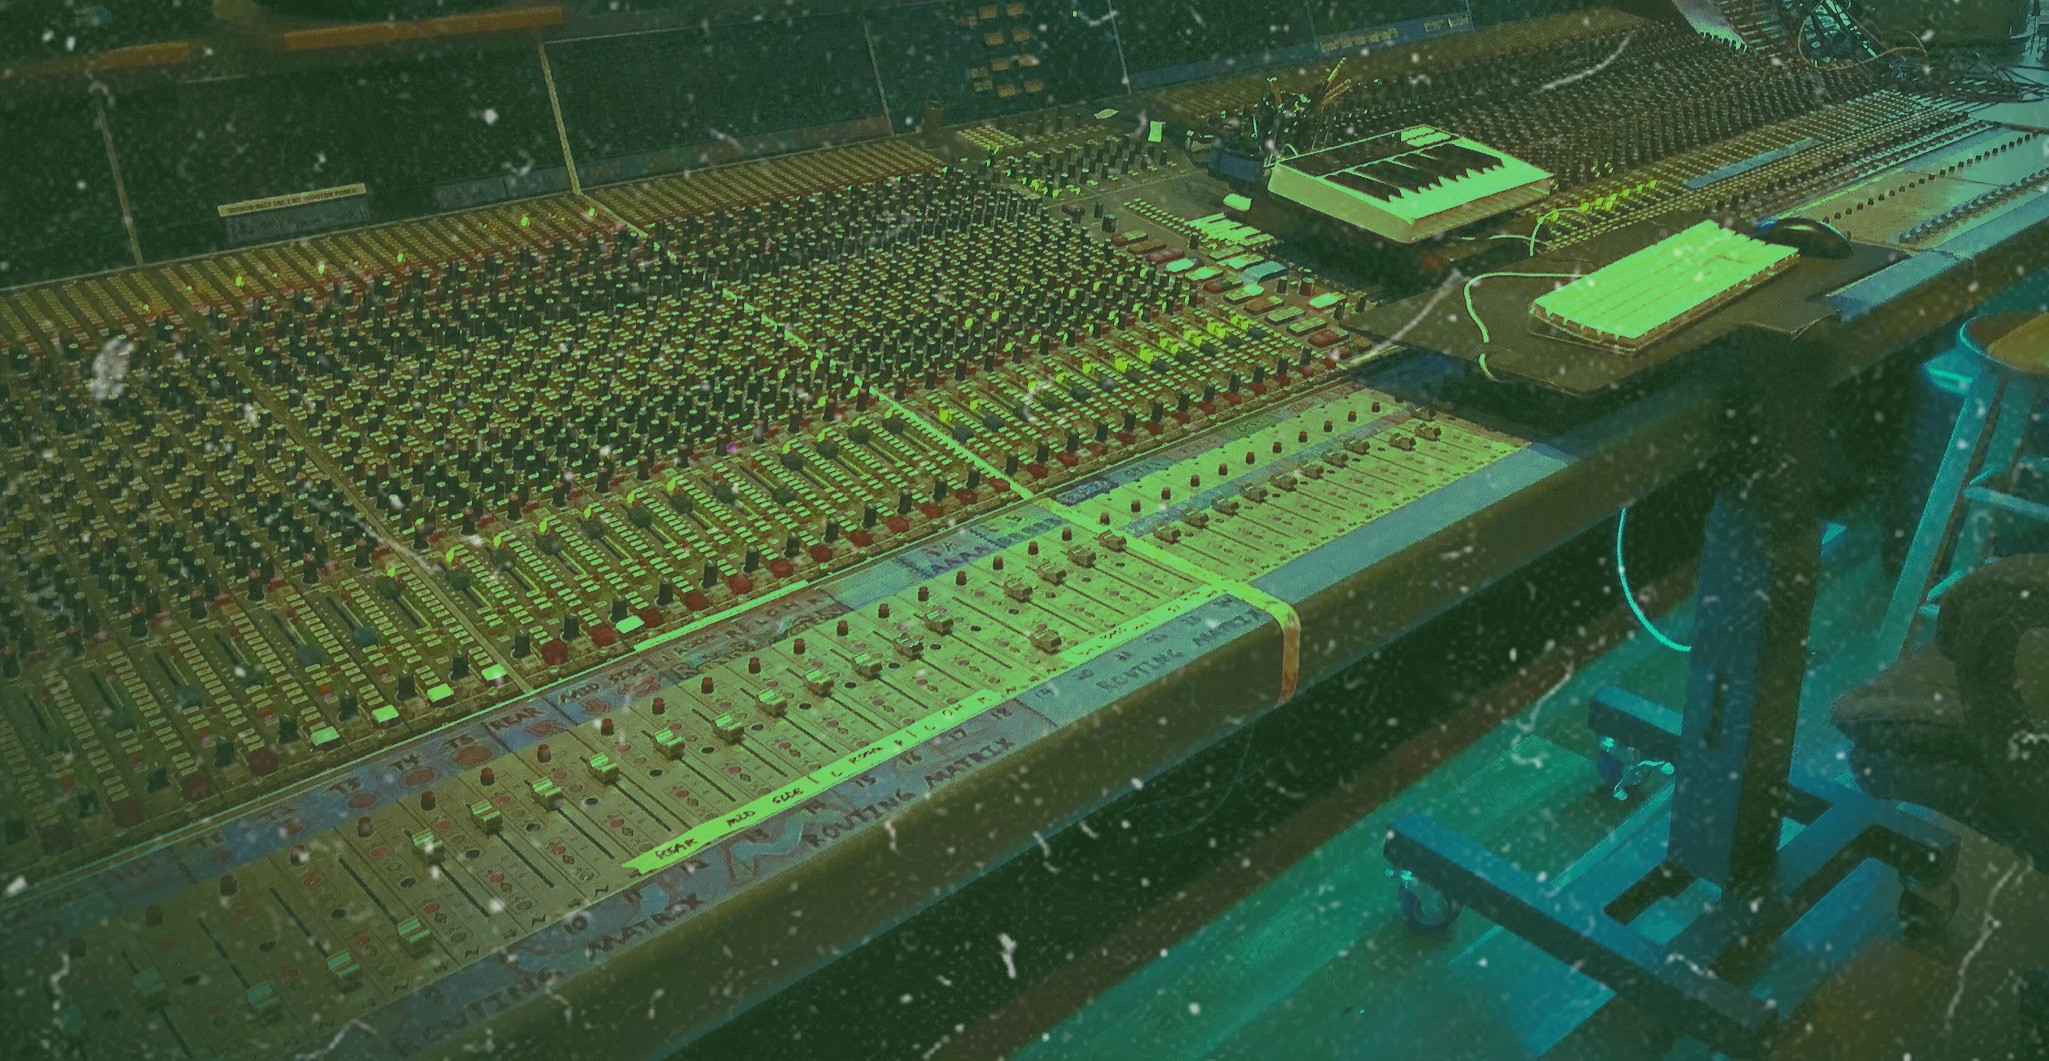 Green Control Room A Neve Console